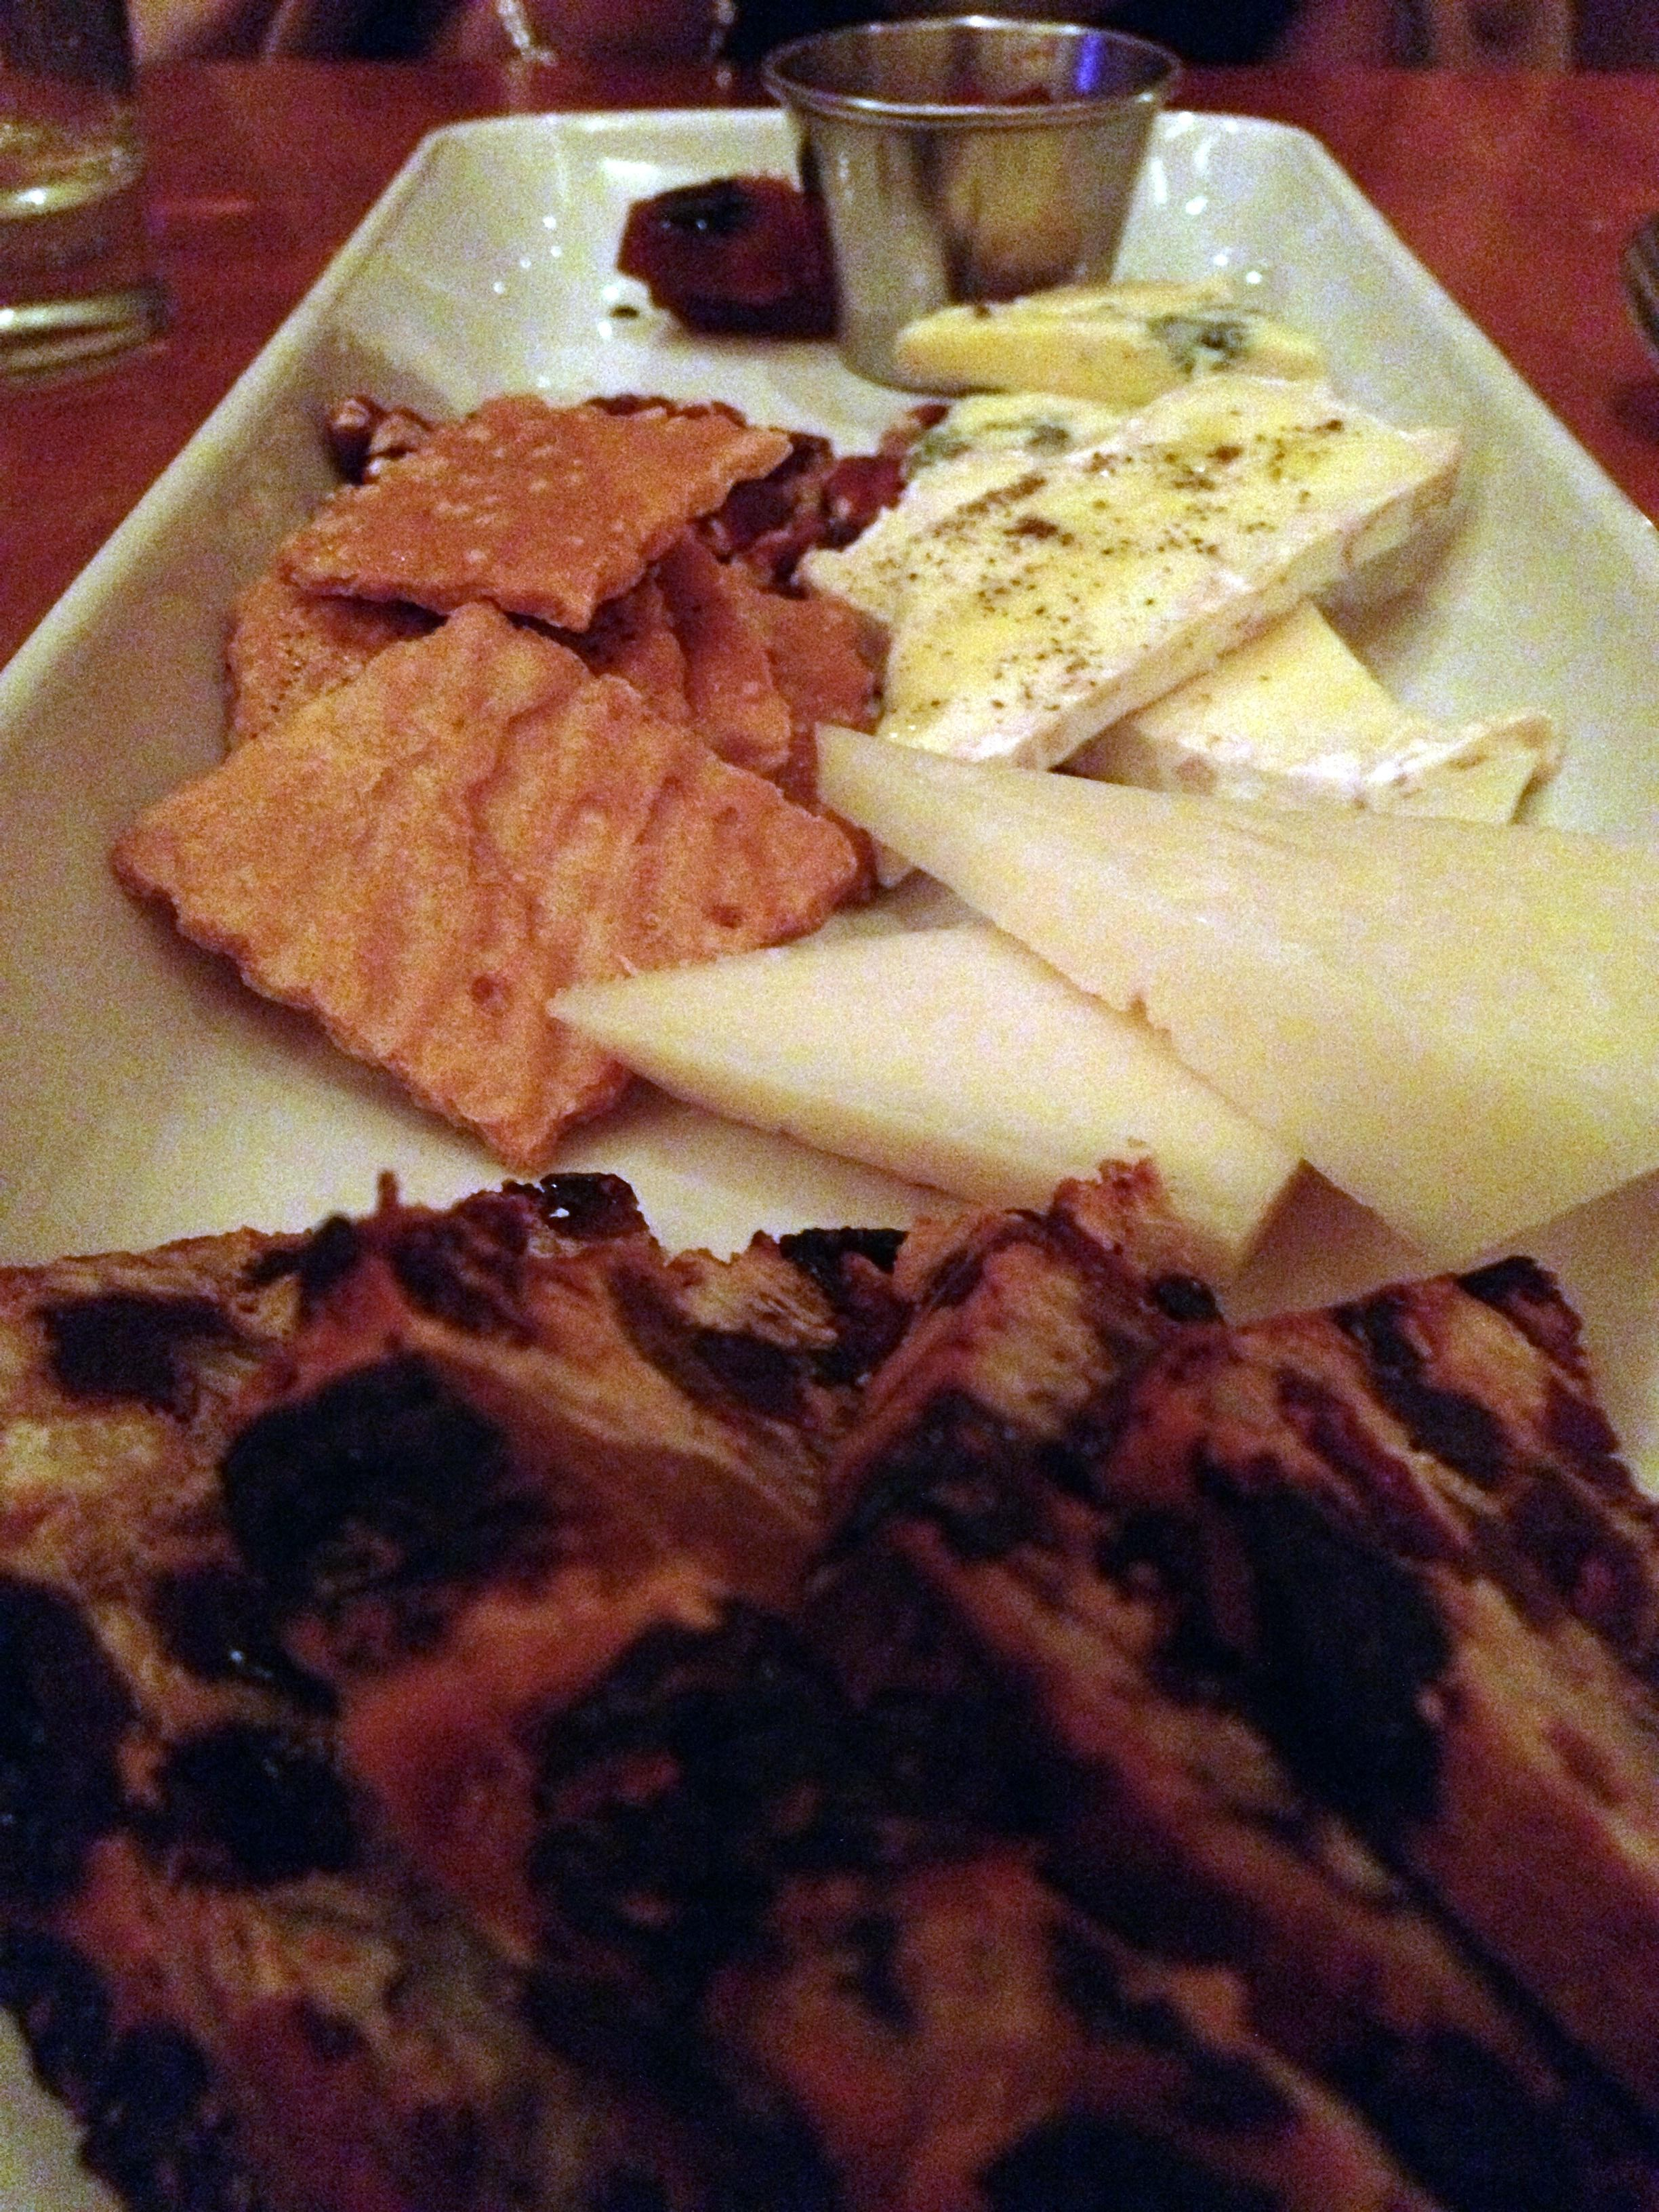 Majestic cafe cheese platter